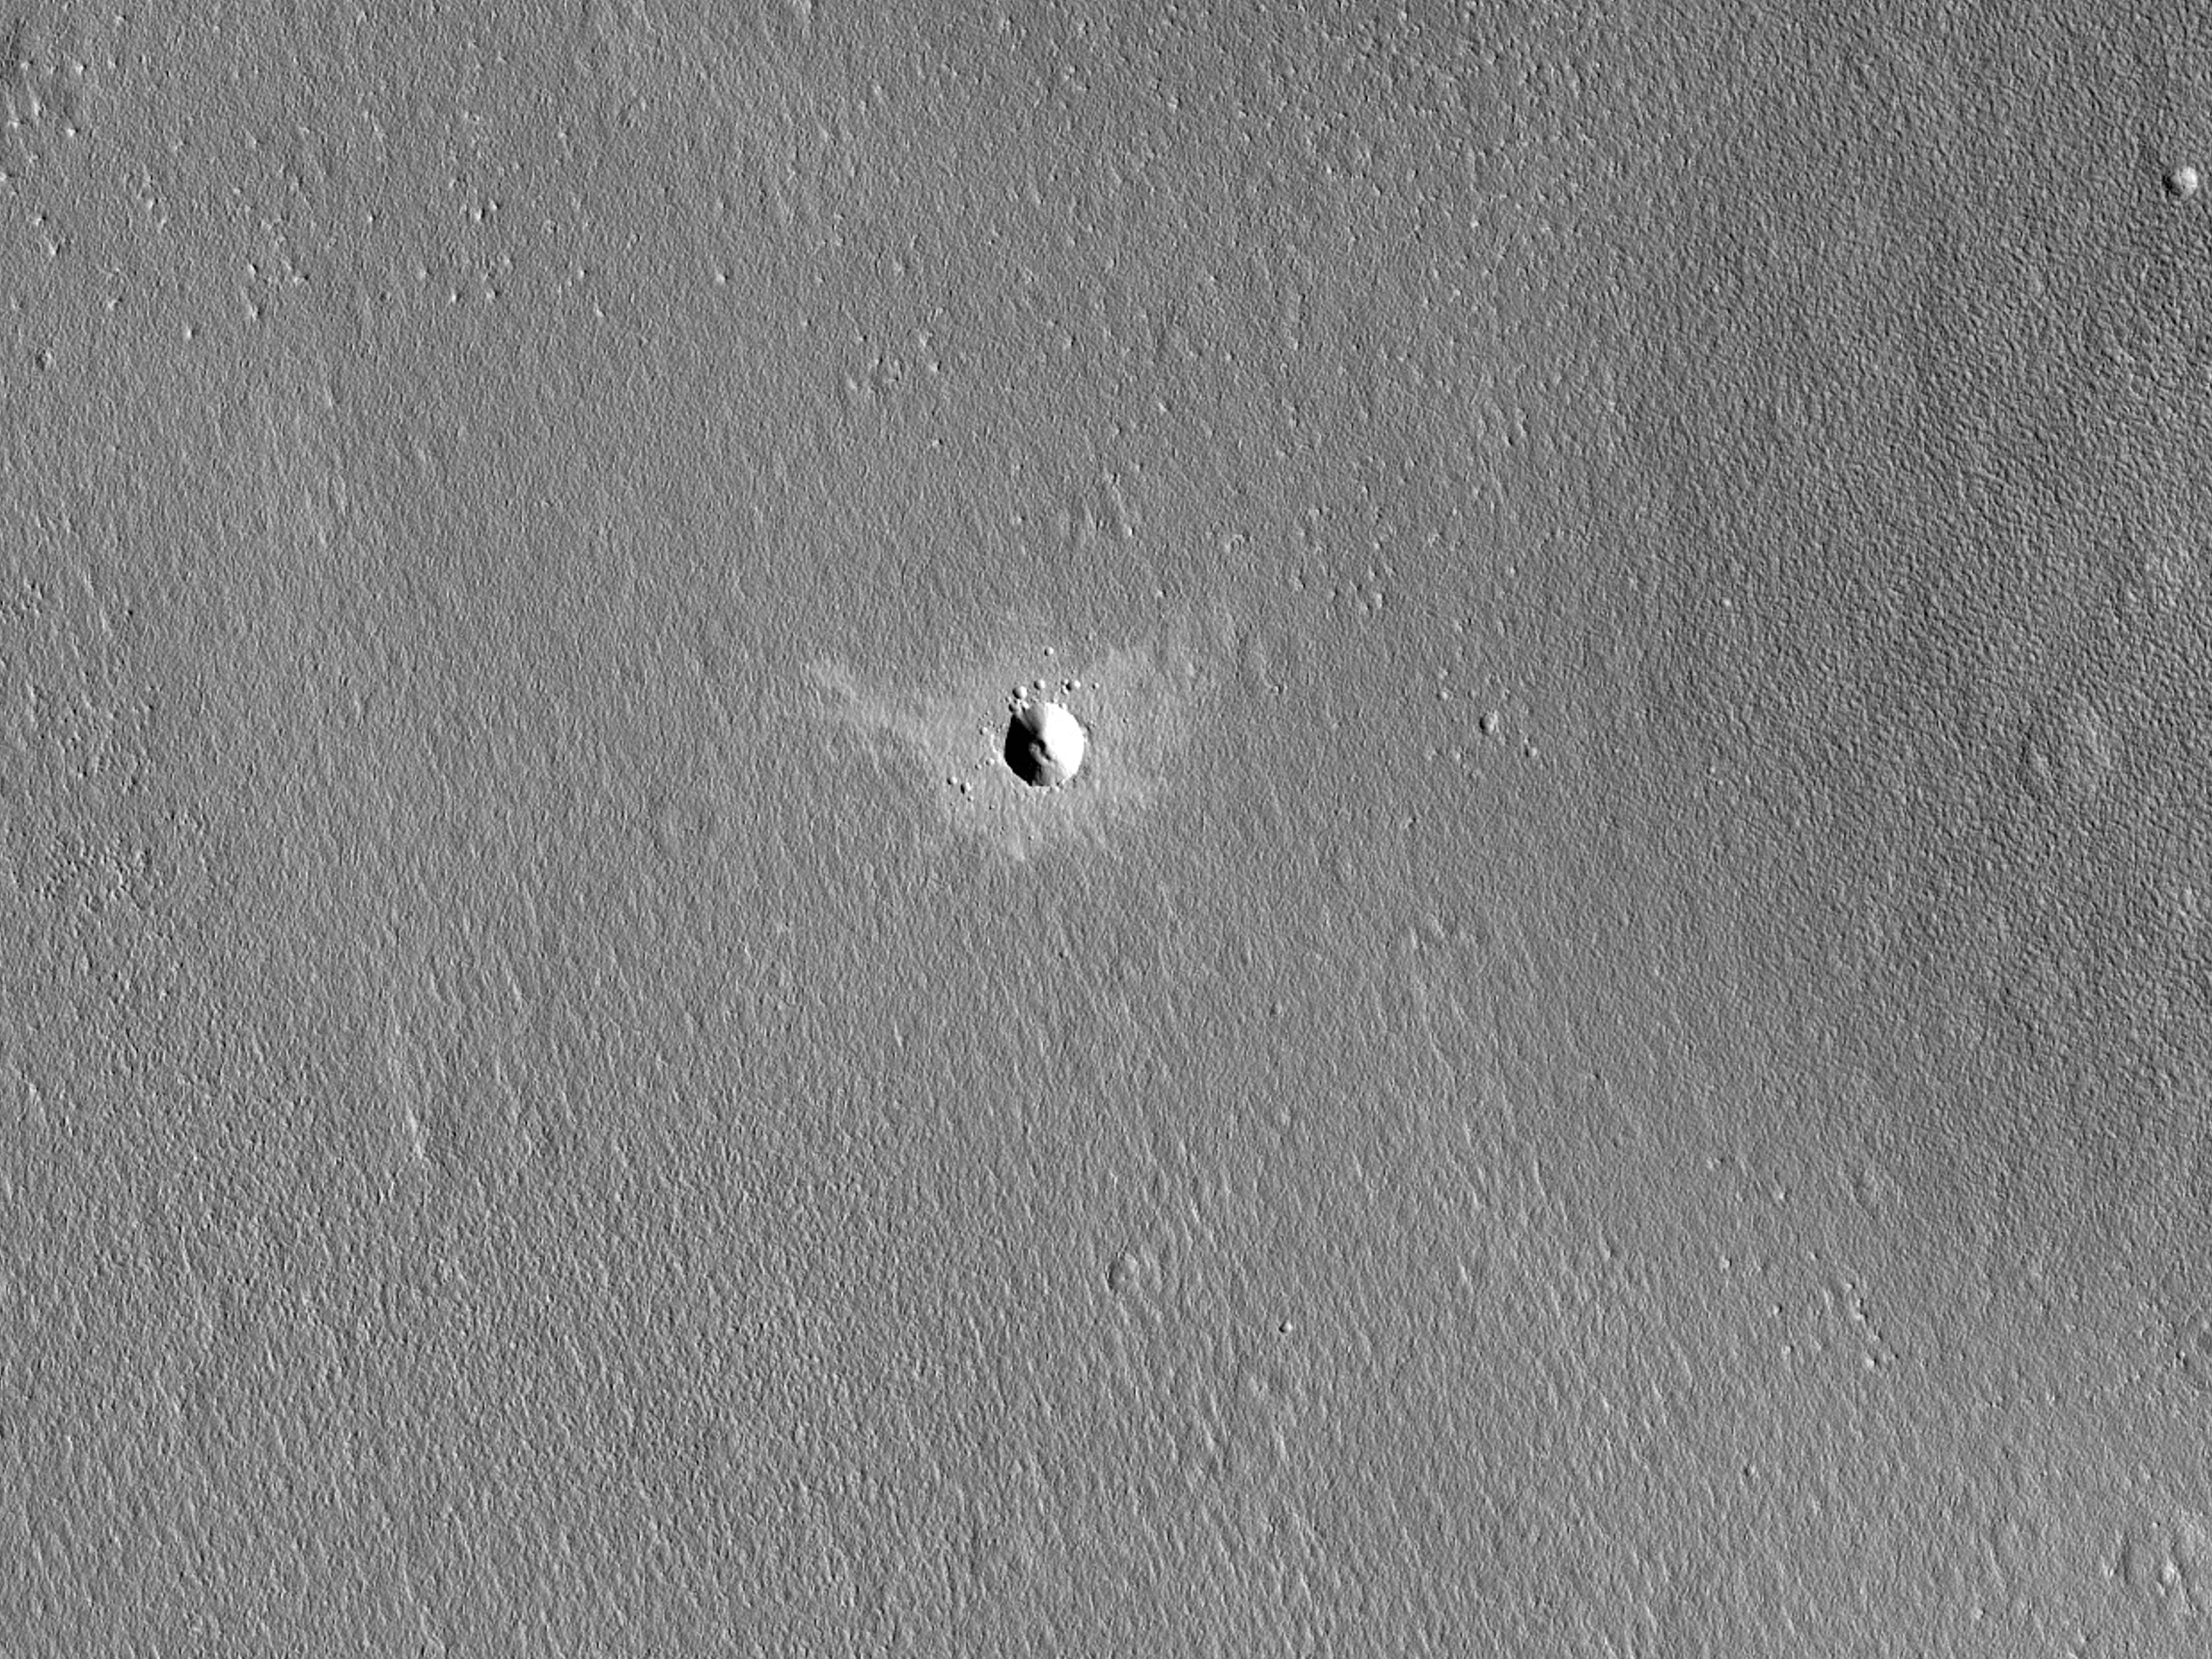 A Fresh Crater in Periglacial Terrain